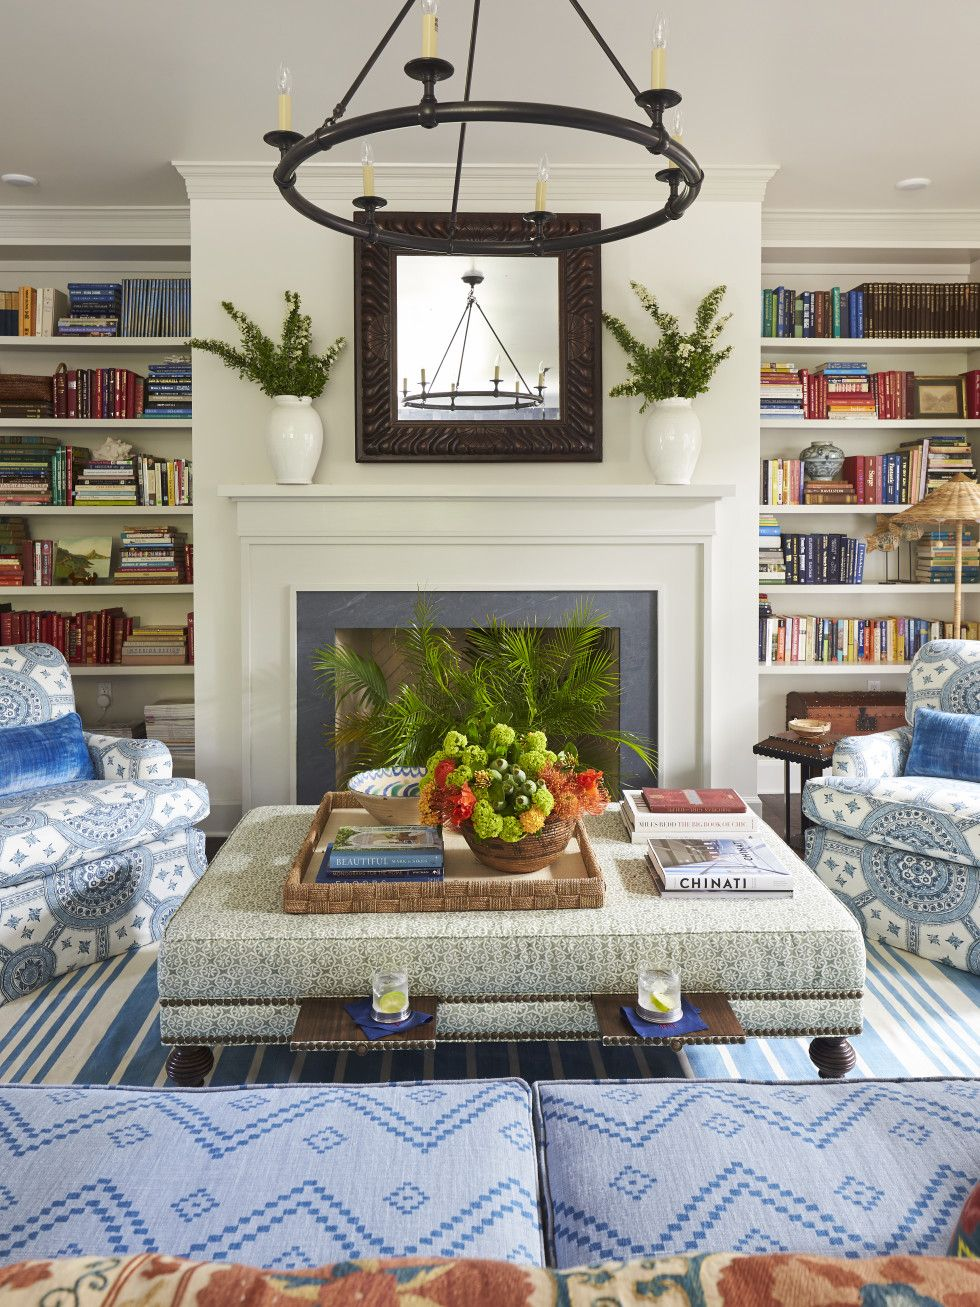 Pin By Cynthia Ernst Interior Design On Mercy Farm In 2021 Home Southern Living Homes Southern Living Rooms Southern living room decor